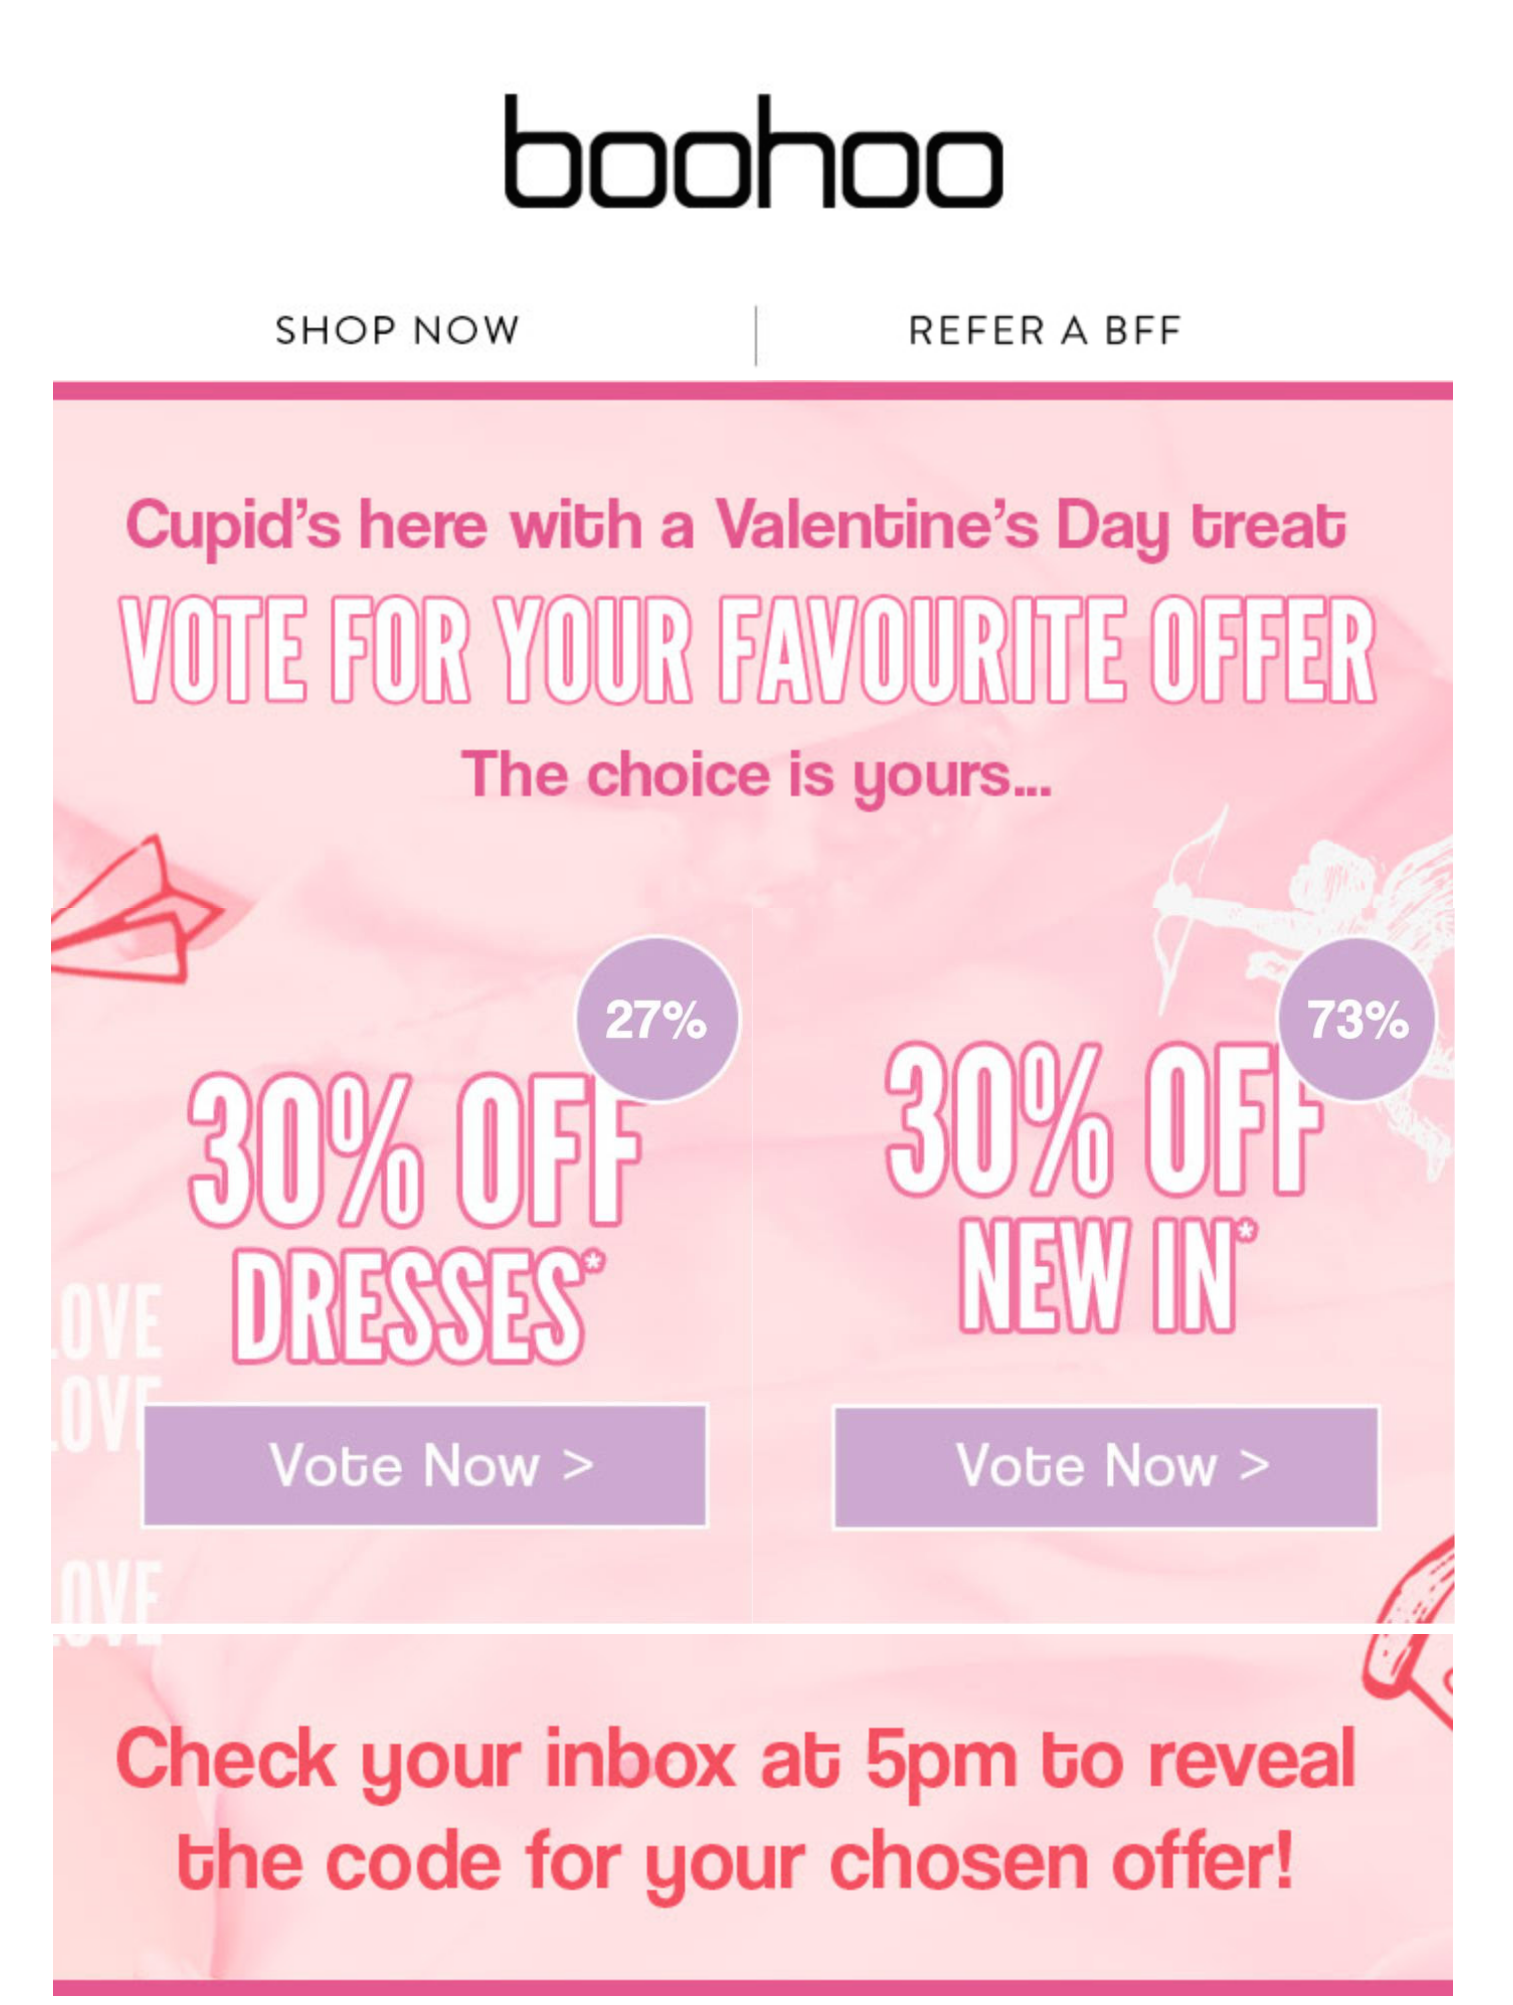 Boohoo Live Poll Example - Vote for the offer you'd like